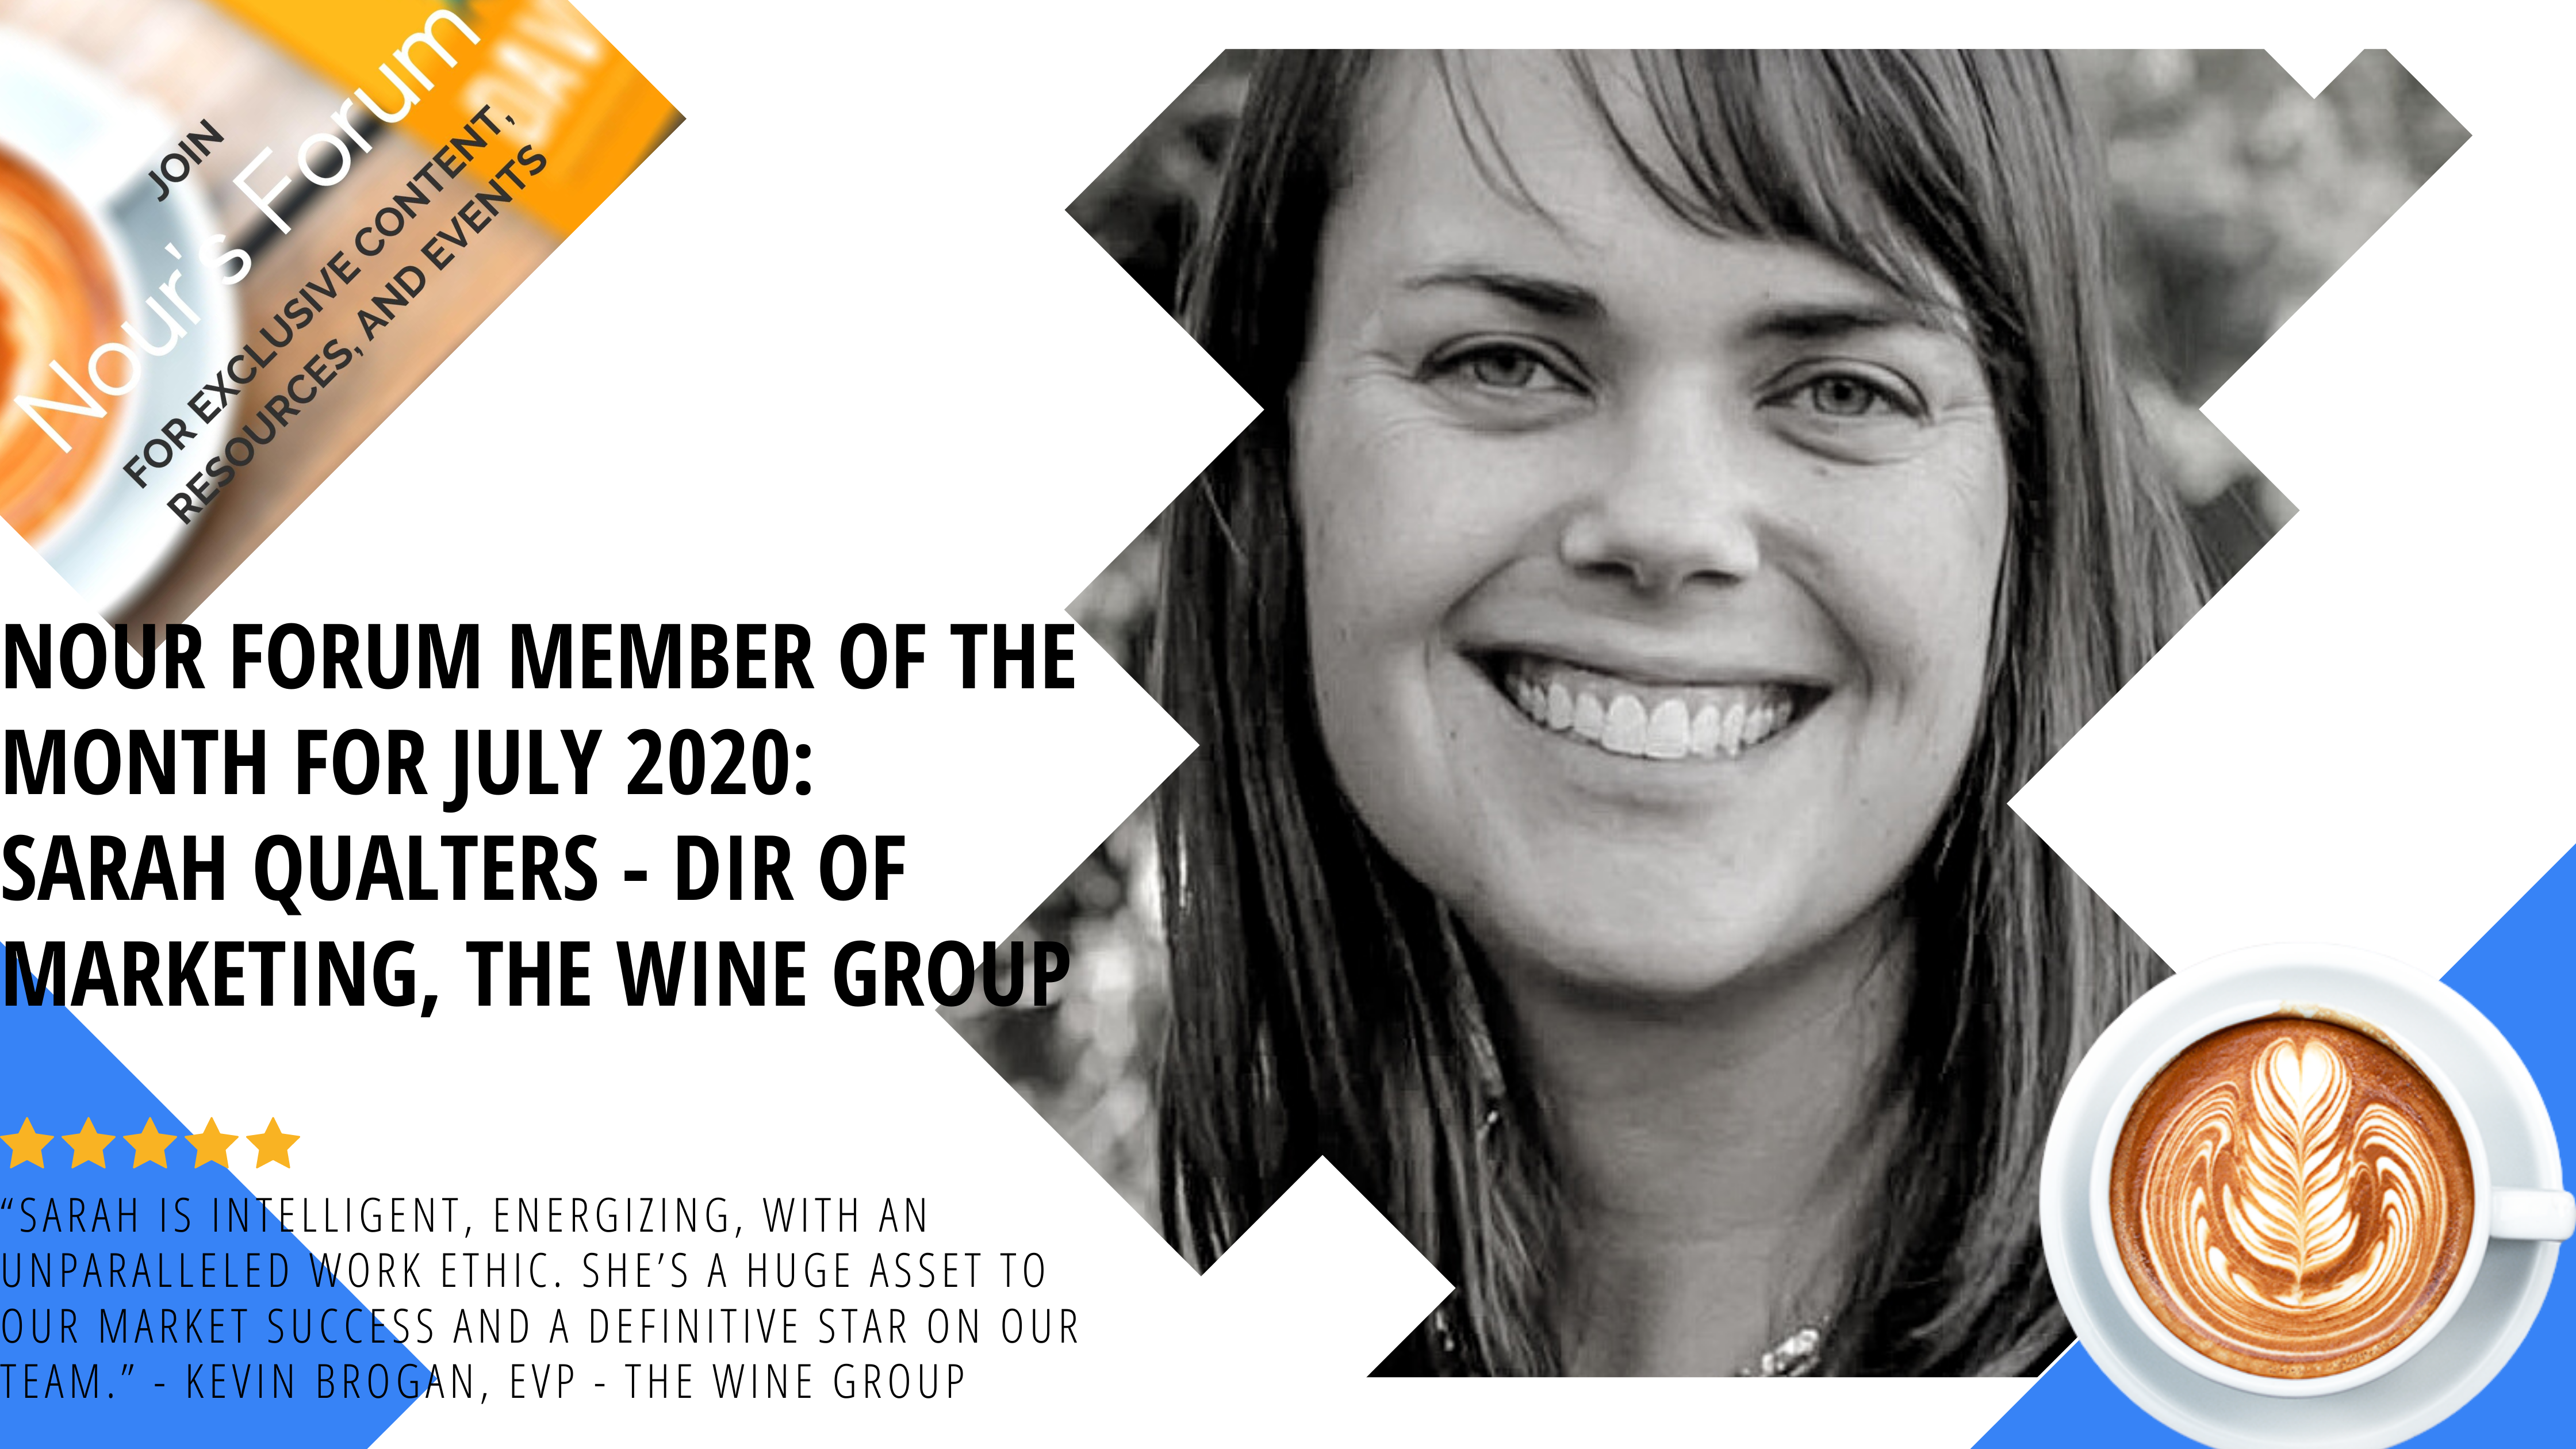 Meet Sarah Qualters of The Wine Group, Nour Forum Member of the Month – July 2020